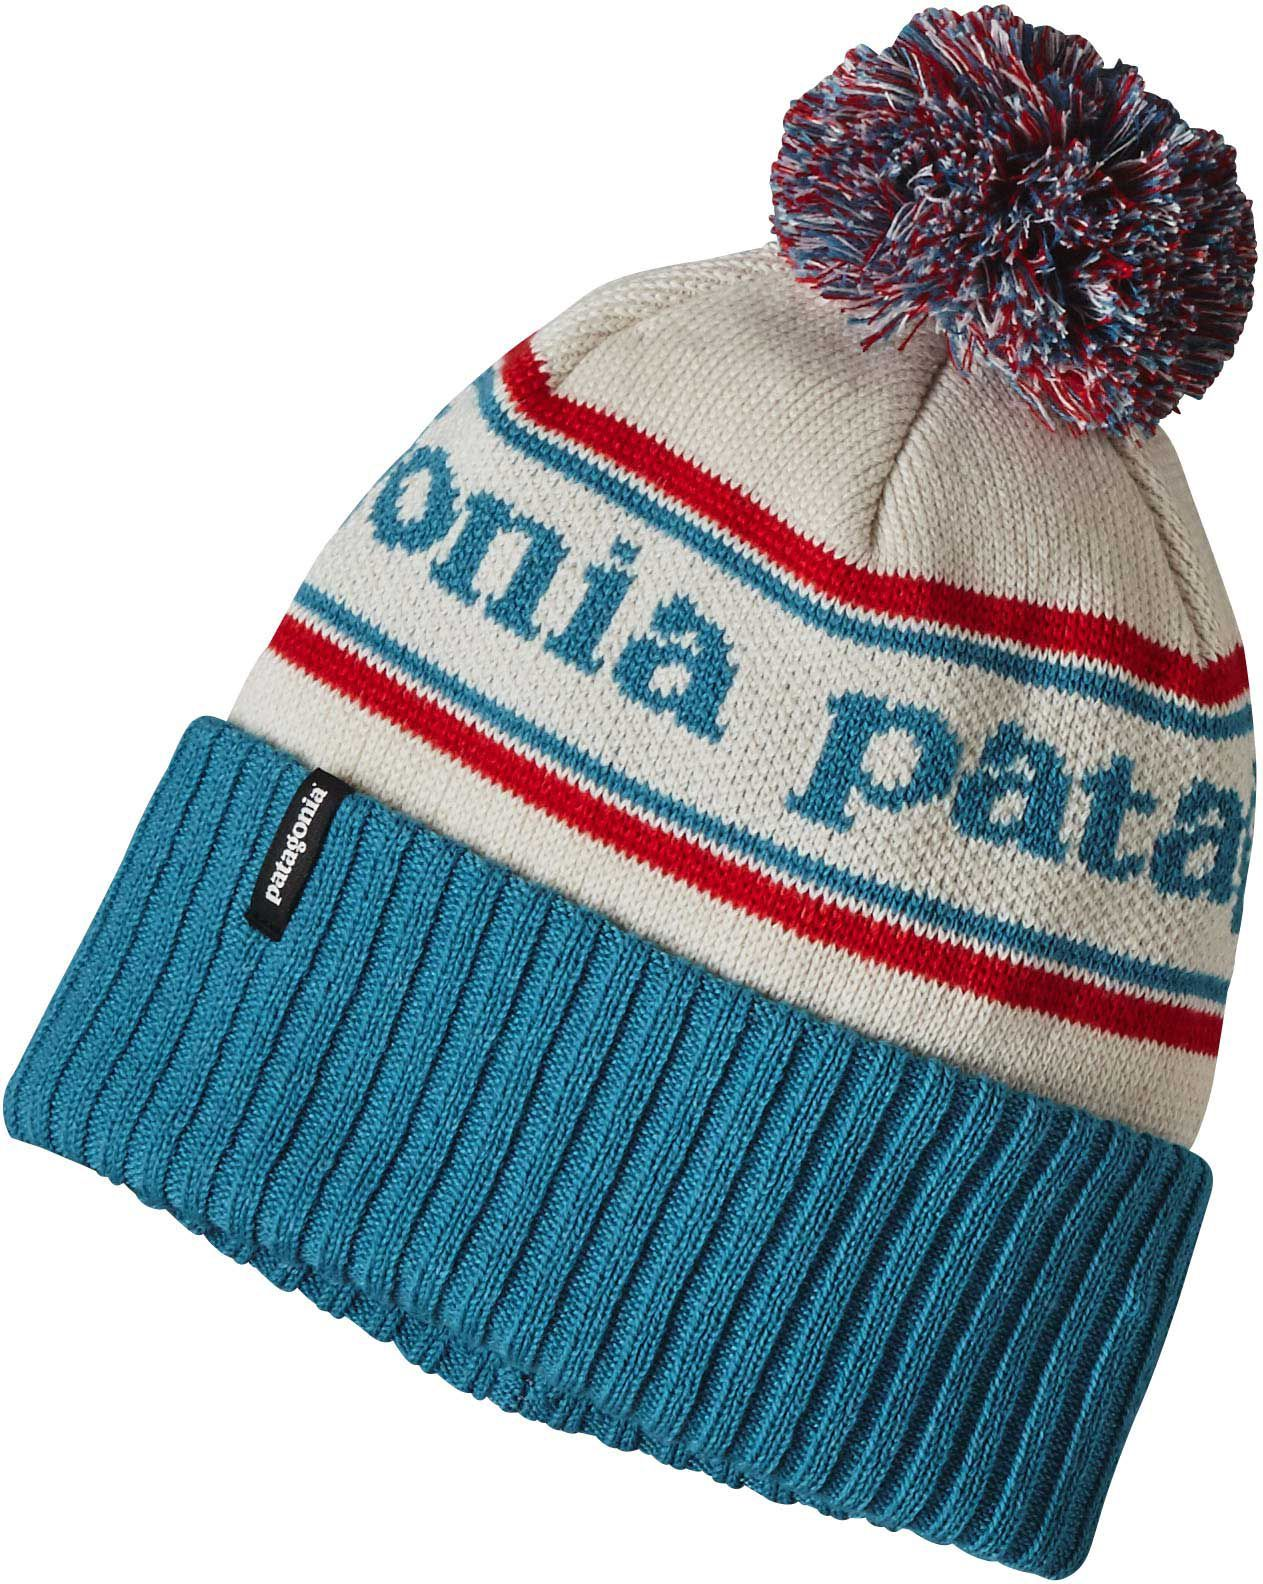 96d9428e5ad Patagonia Men s Powder Town Beanie in 2019